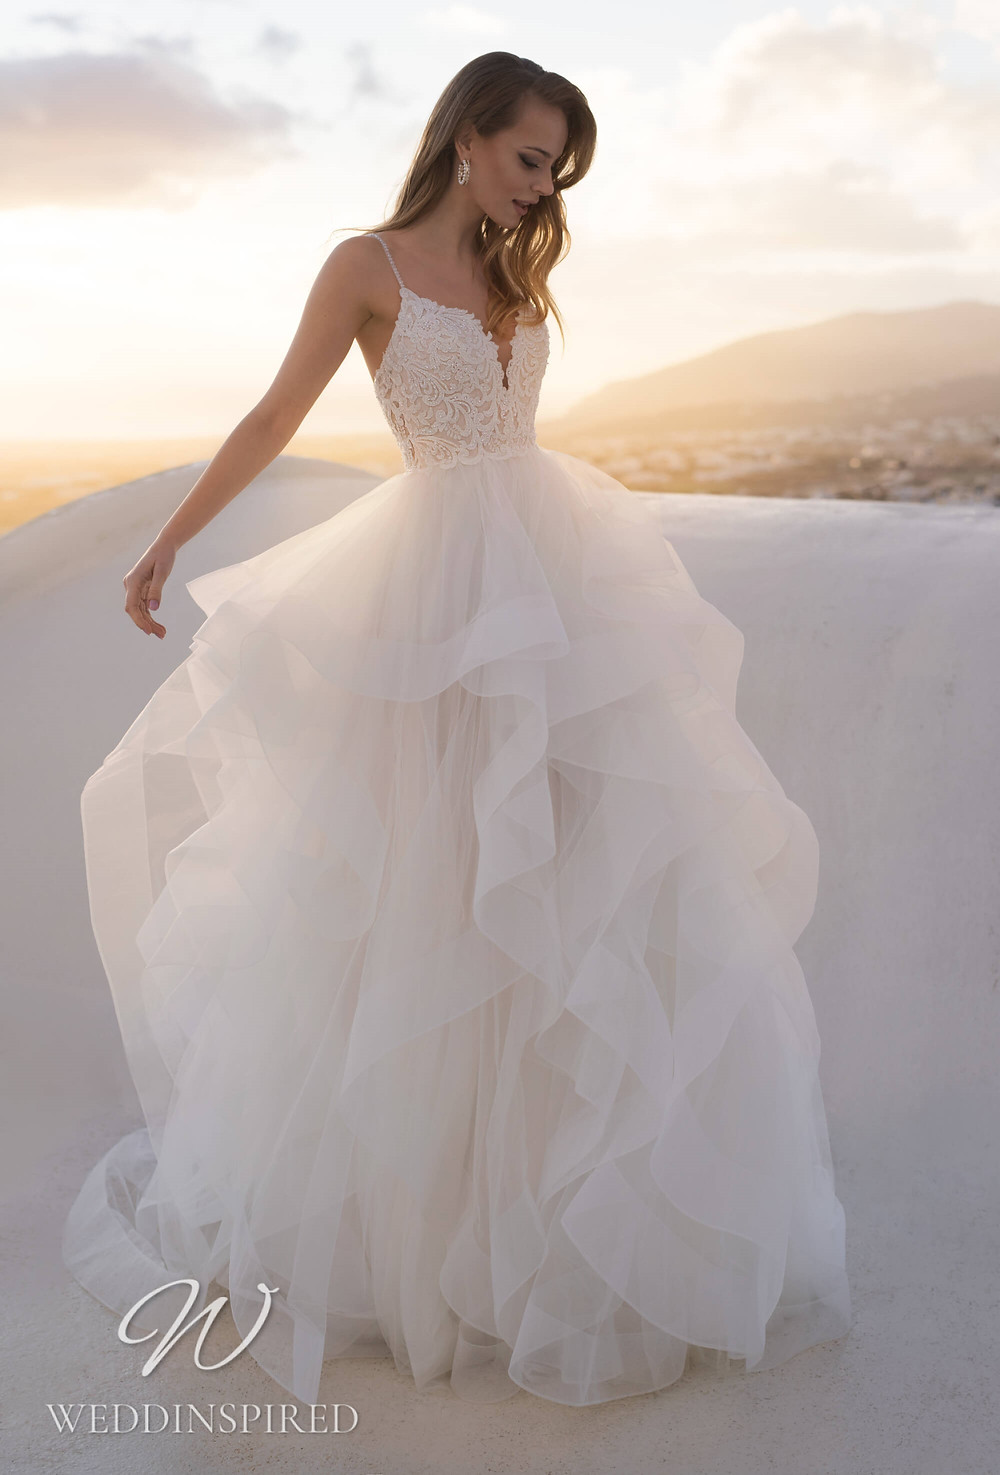 A Blunny 2021 tulle and lace A-line wedding dress with a ruffle skirt